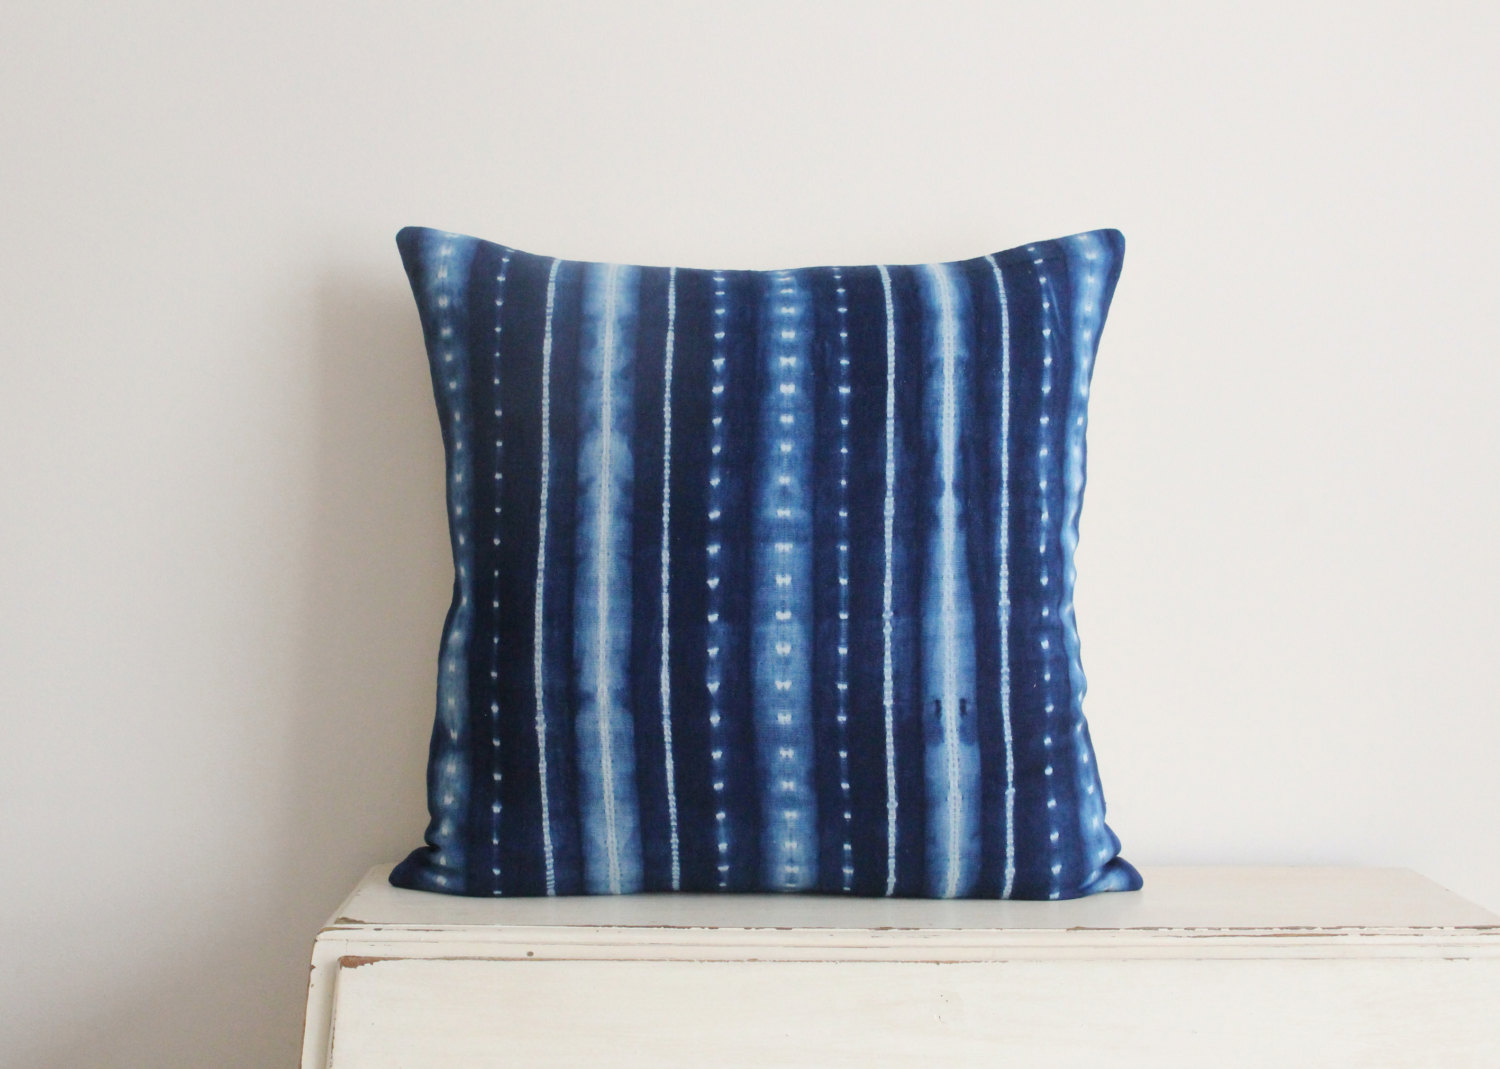 Image of: Linen Shibori Pillow